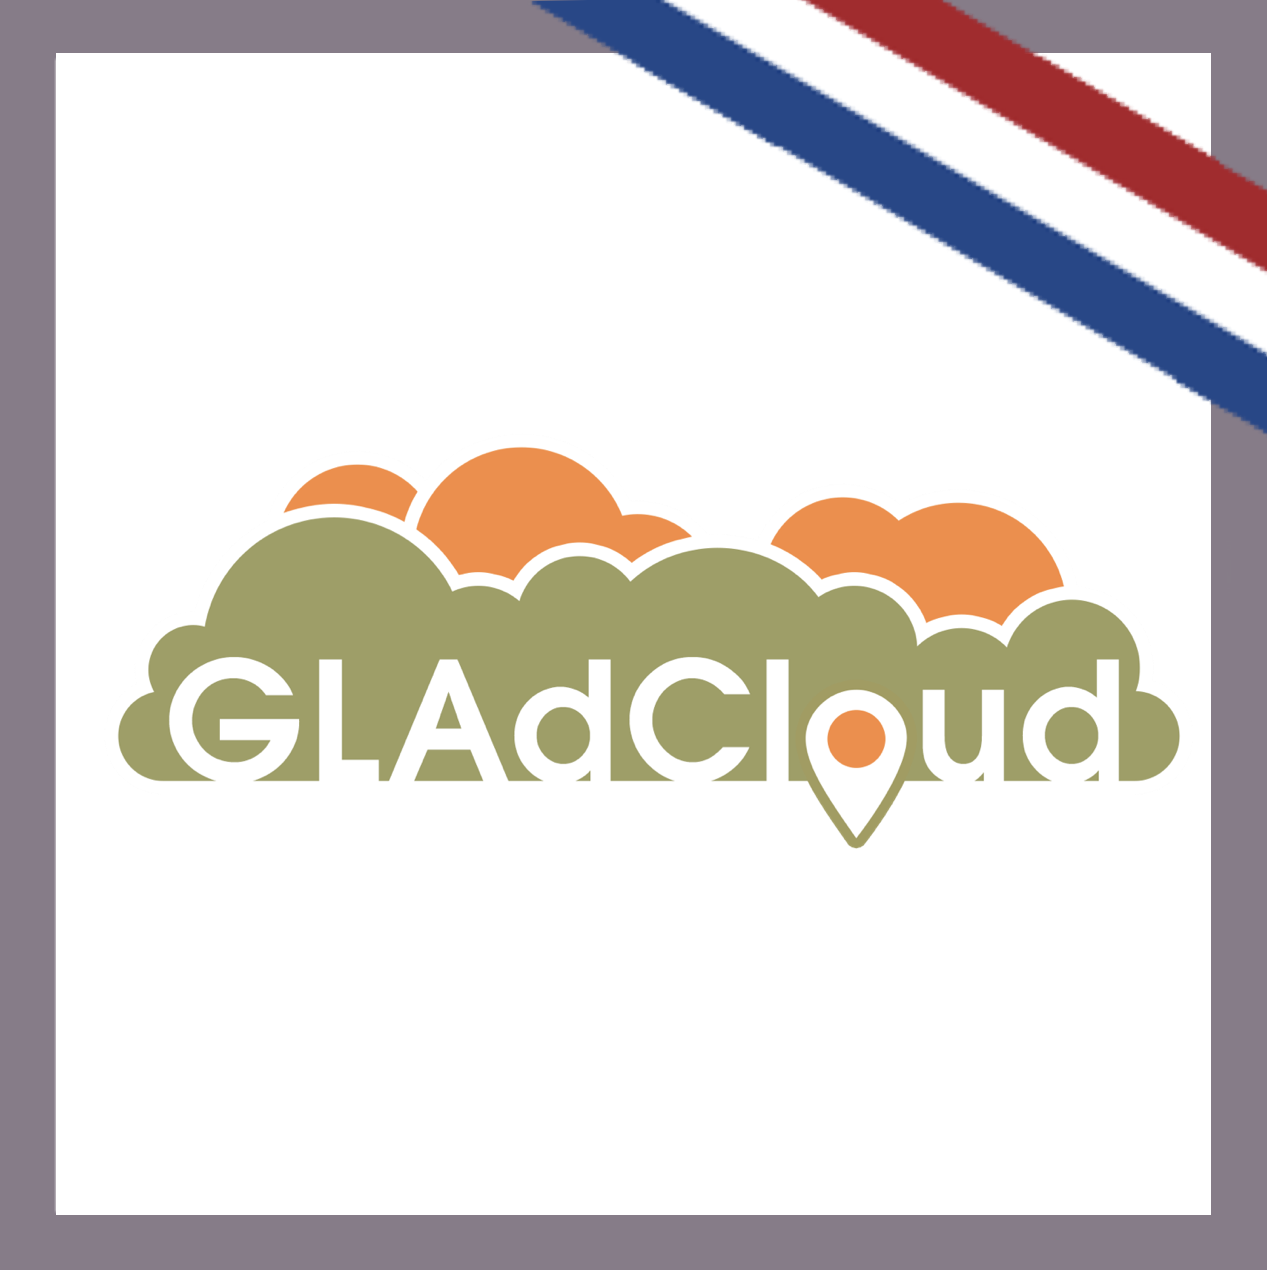 Gladcloud is an enterprise SaaS platform for brands and services in the global convenience economy to drive increased revenue across their network of local affiliates!